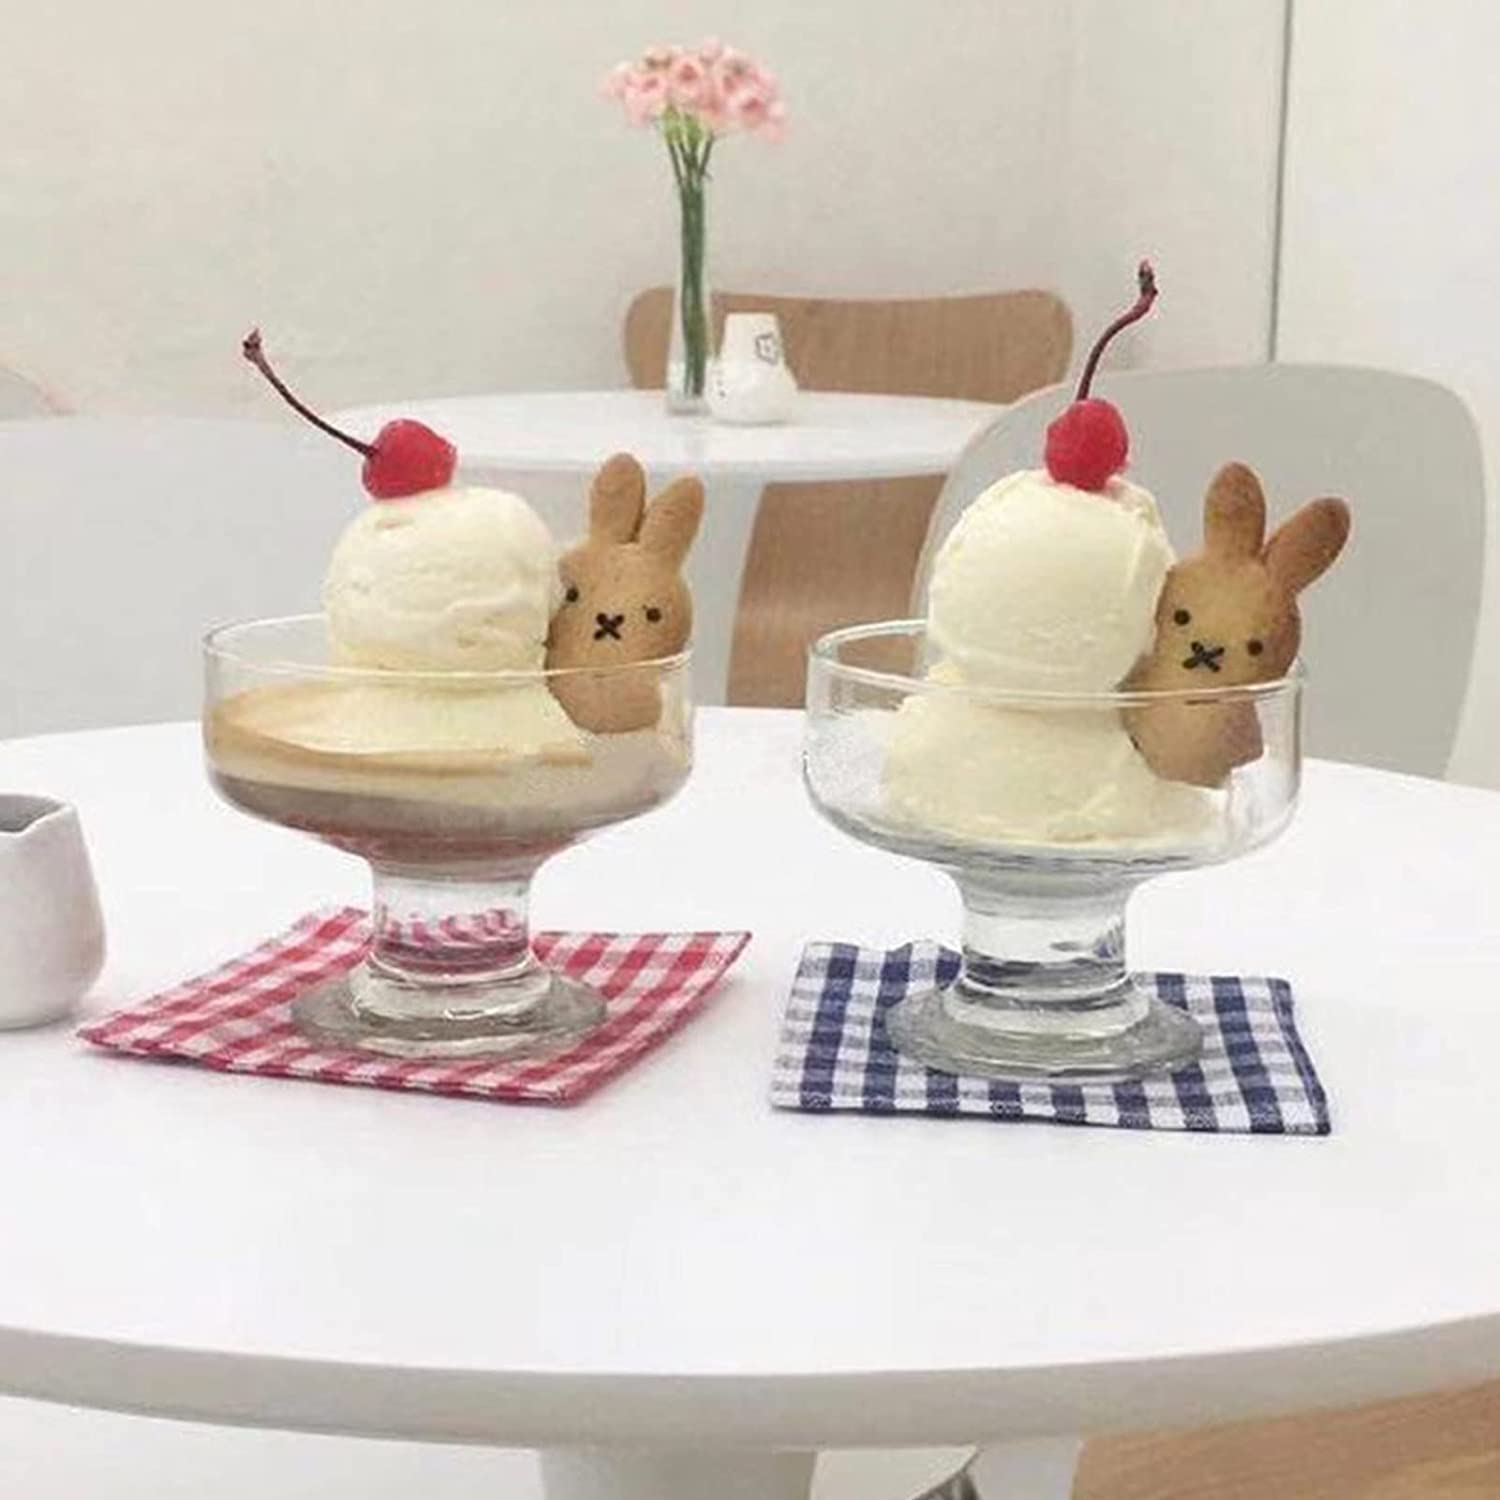 NBJT Modern Sale Special Price Ice Cream Yogurt Dessert Cup Tall Simple New product!! Bowl